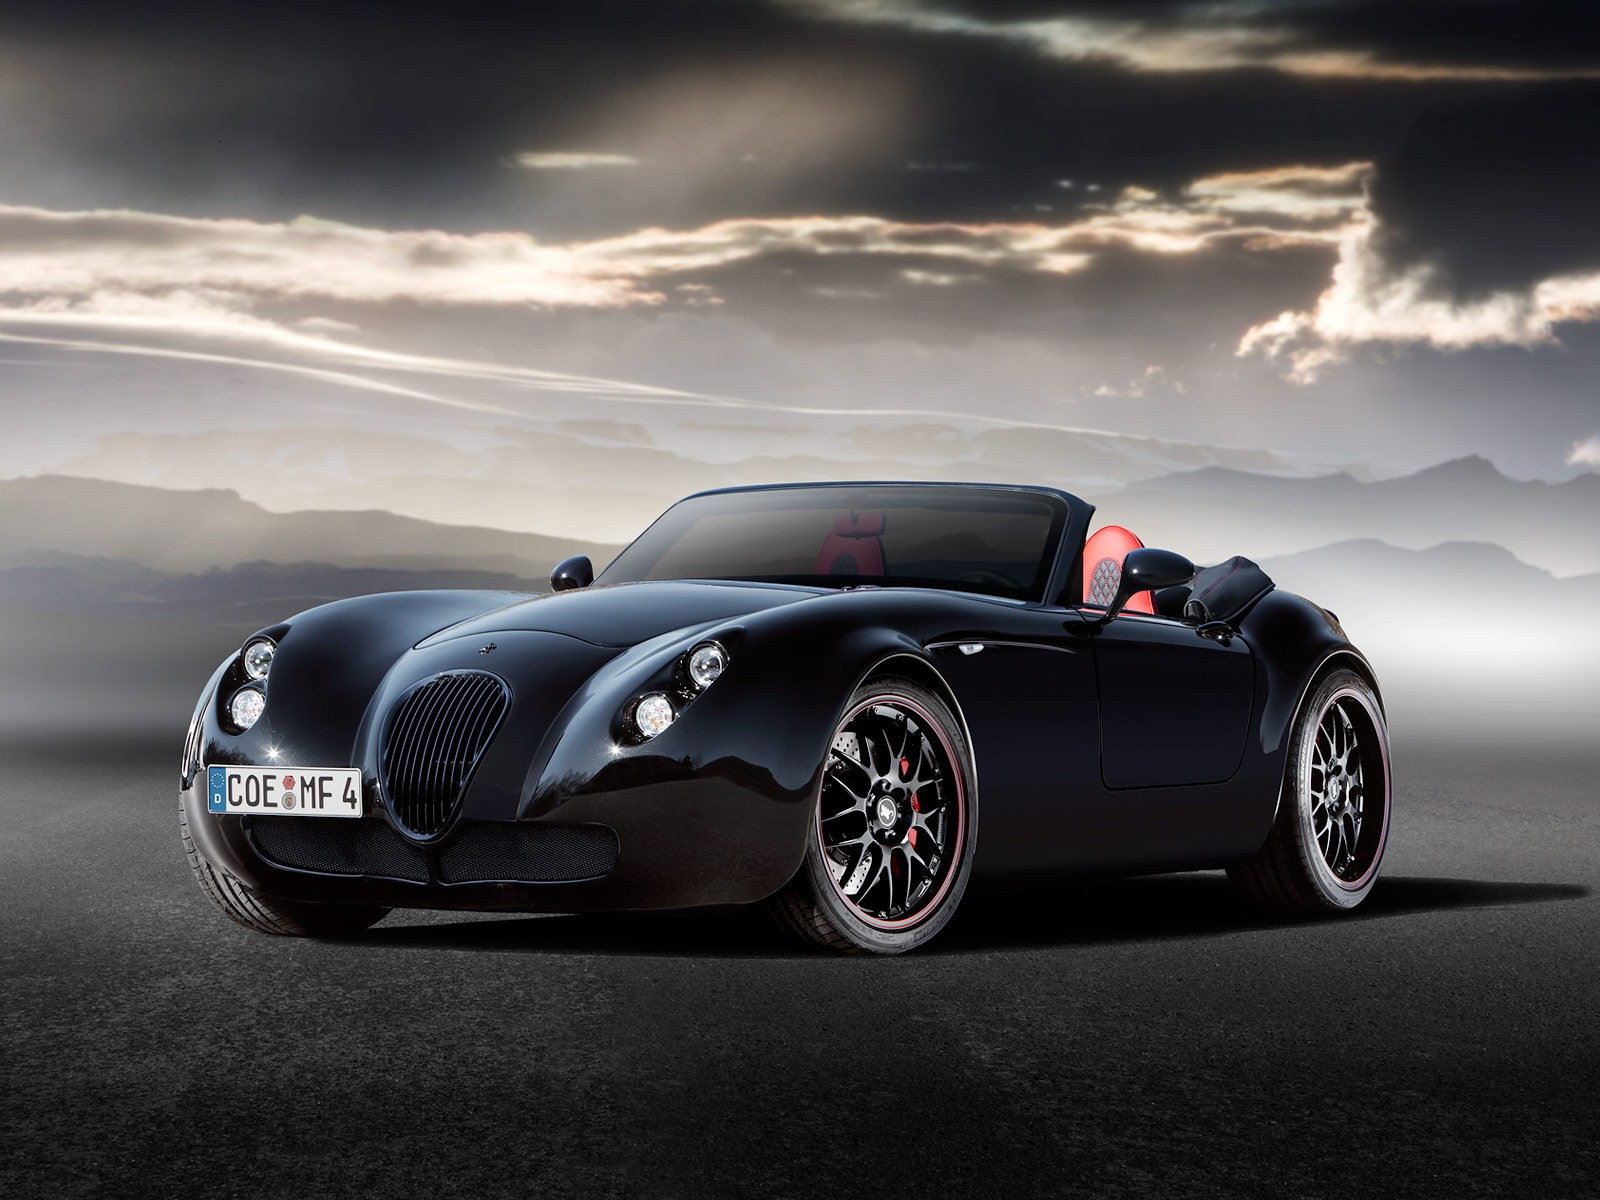 1600x1200 - Wiesmann GT MF4 Wallpapers 16